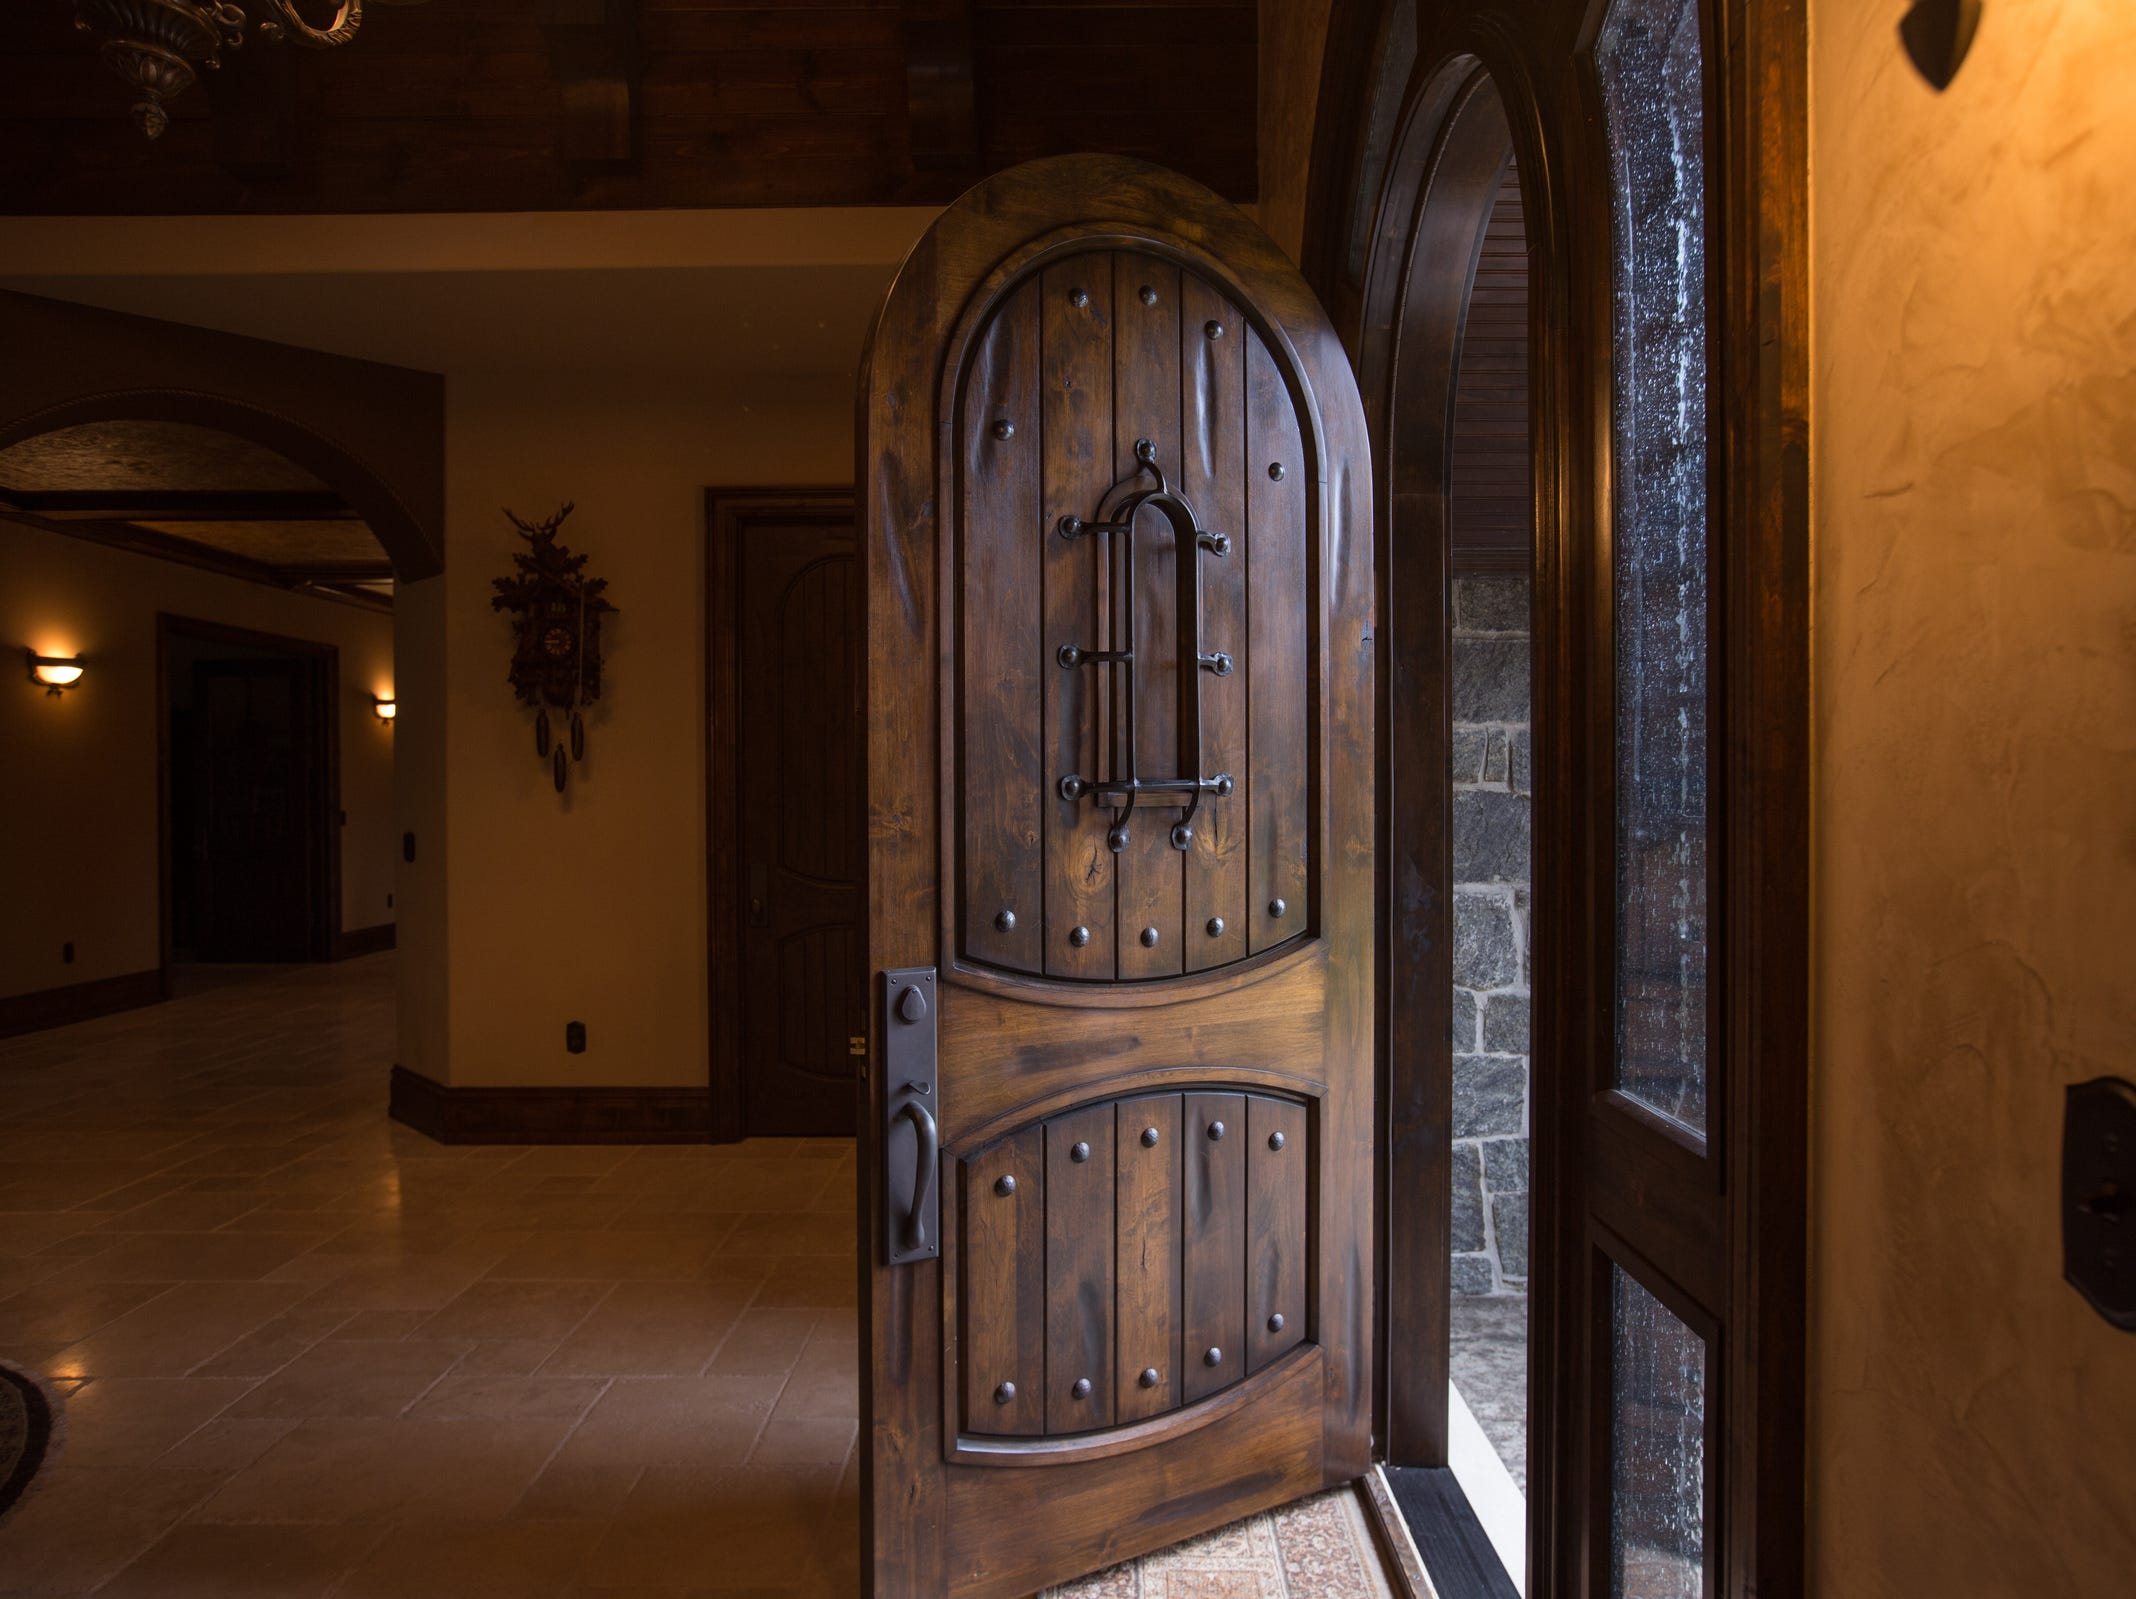 The large wooden entryway door is opened into the foyer.